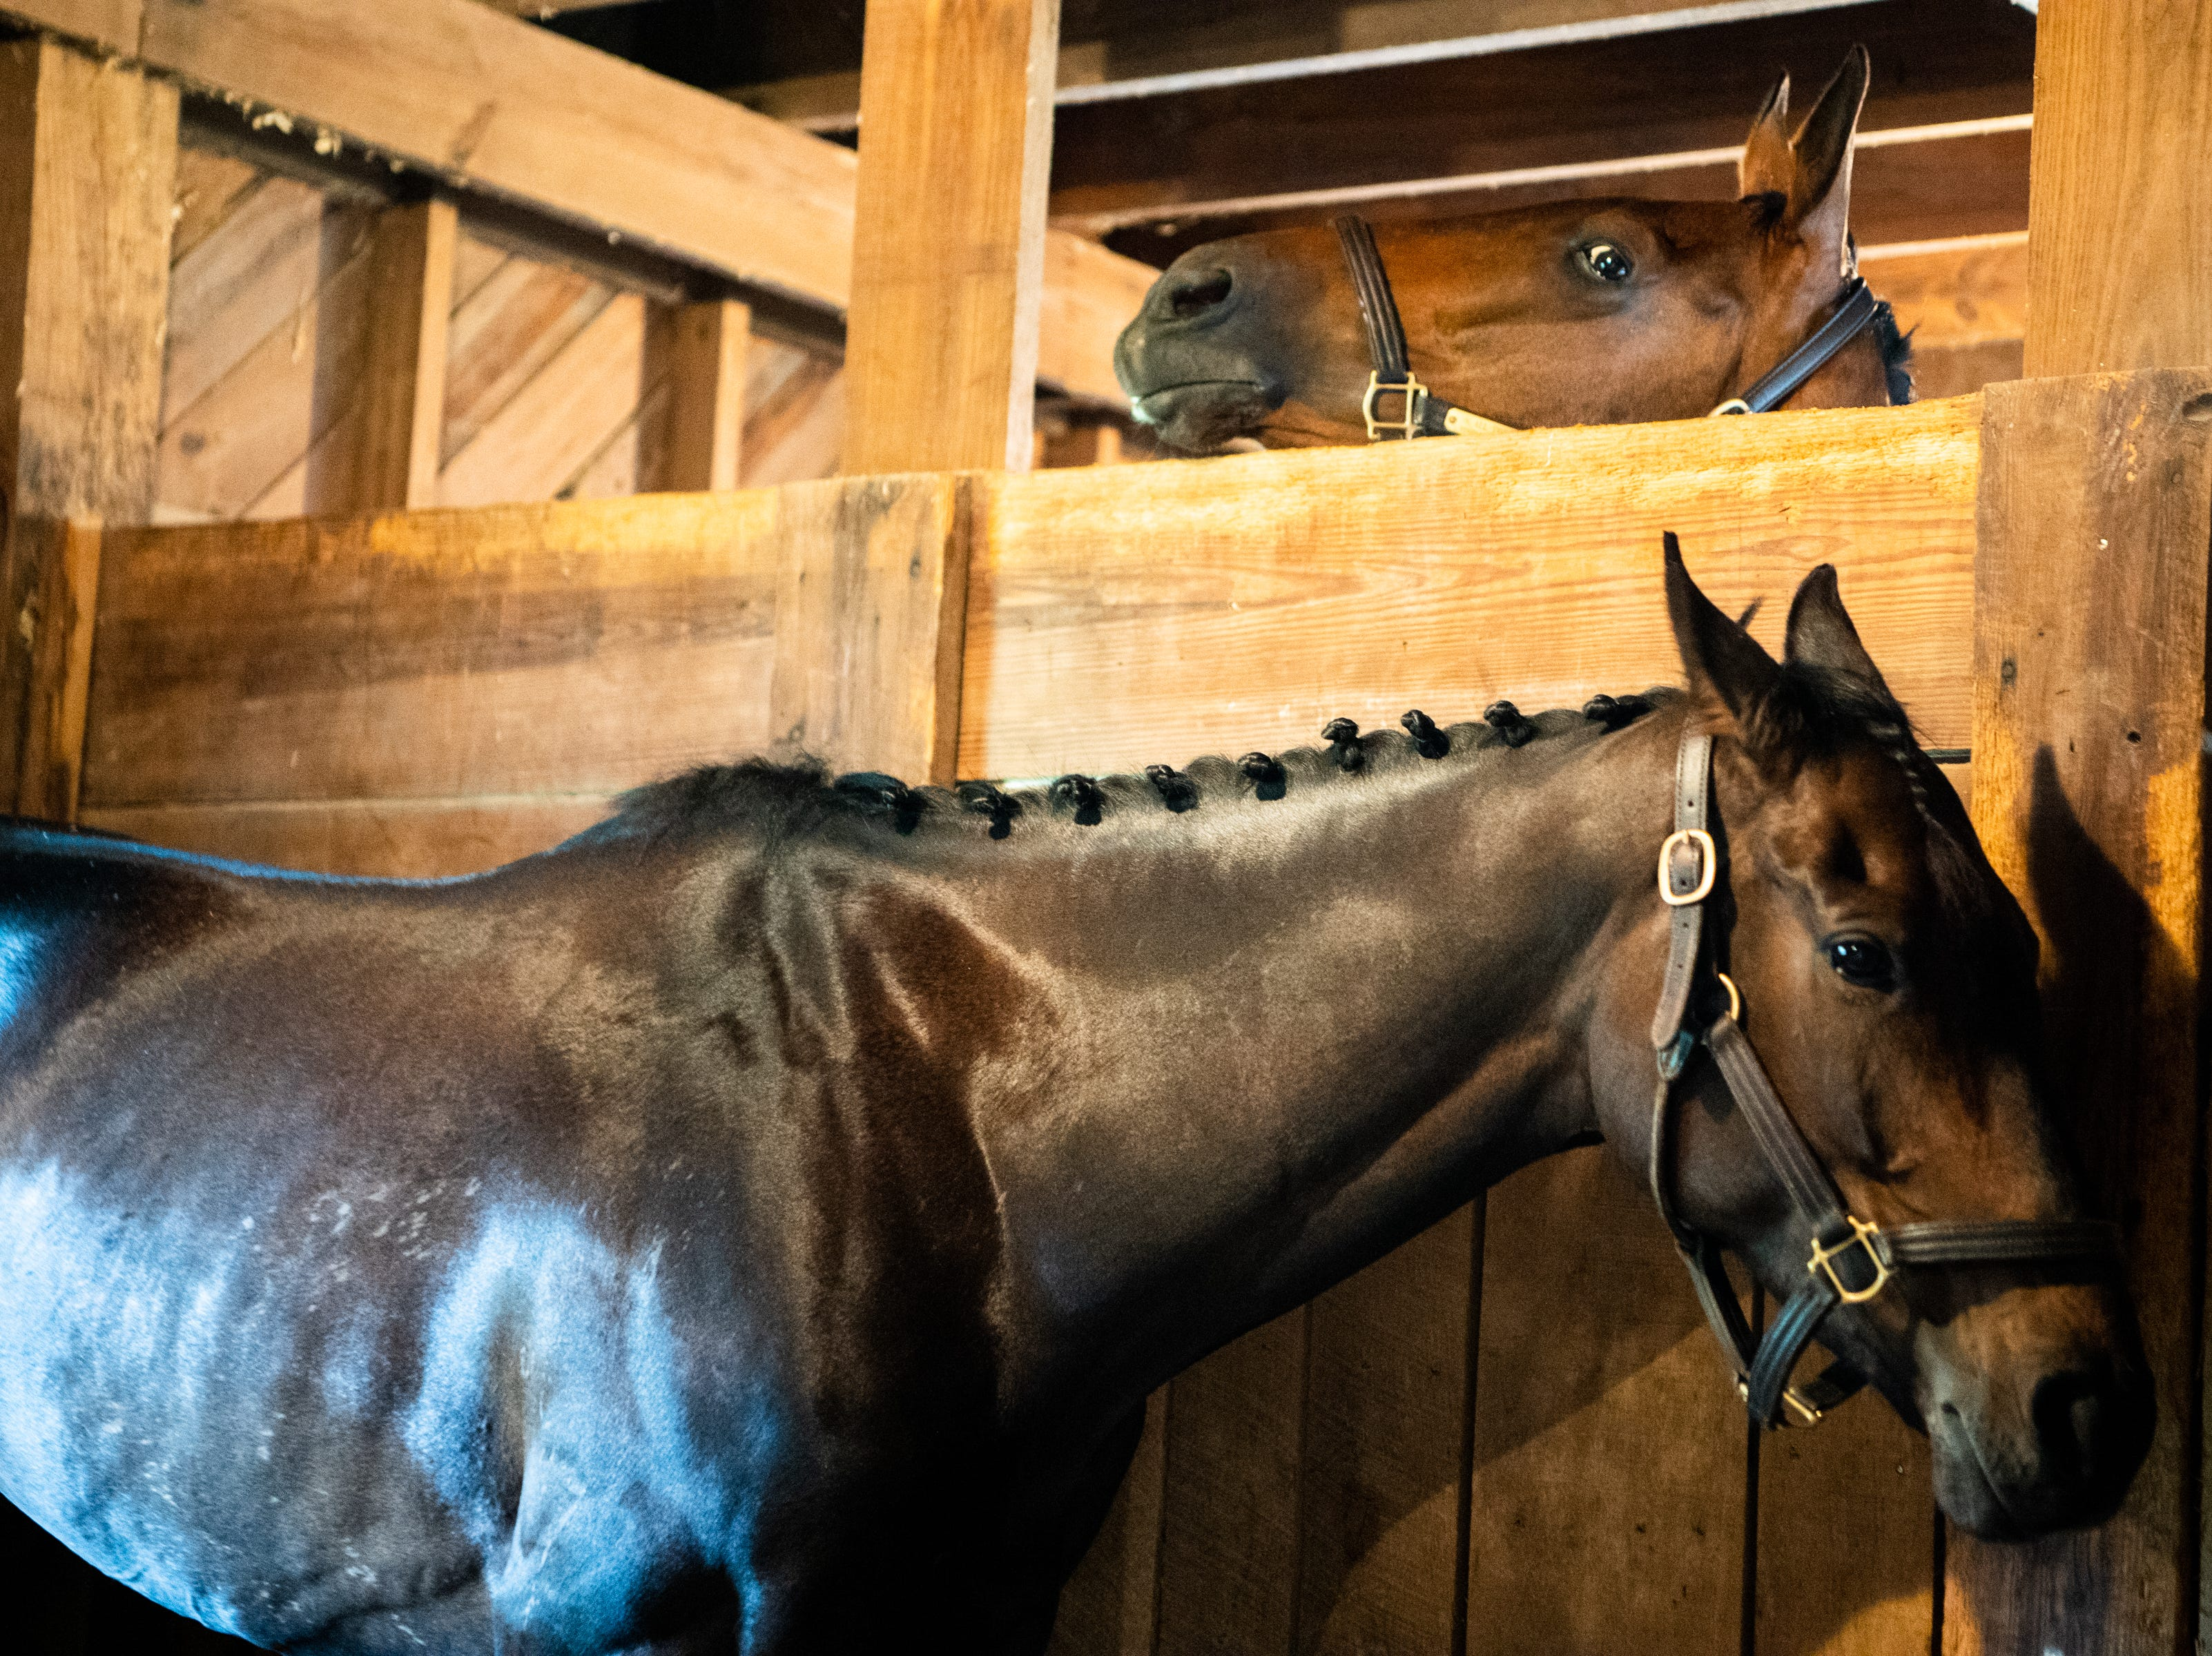 A horse peeks over a stable during the Iroquois Steeplechase at Percy Warner Park Saturday, May 11, 2019, in Nashville, Tenn.